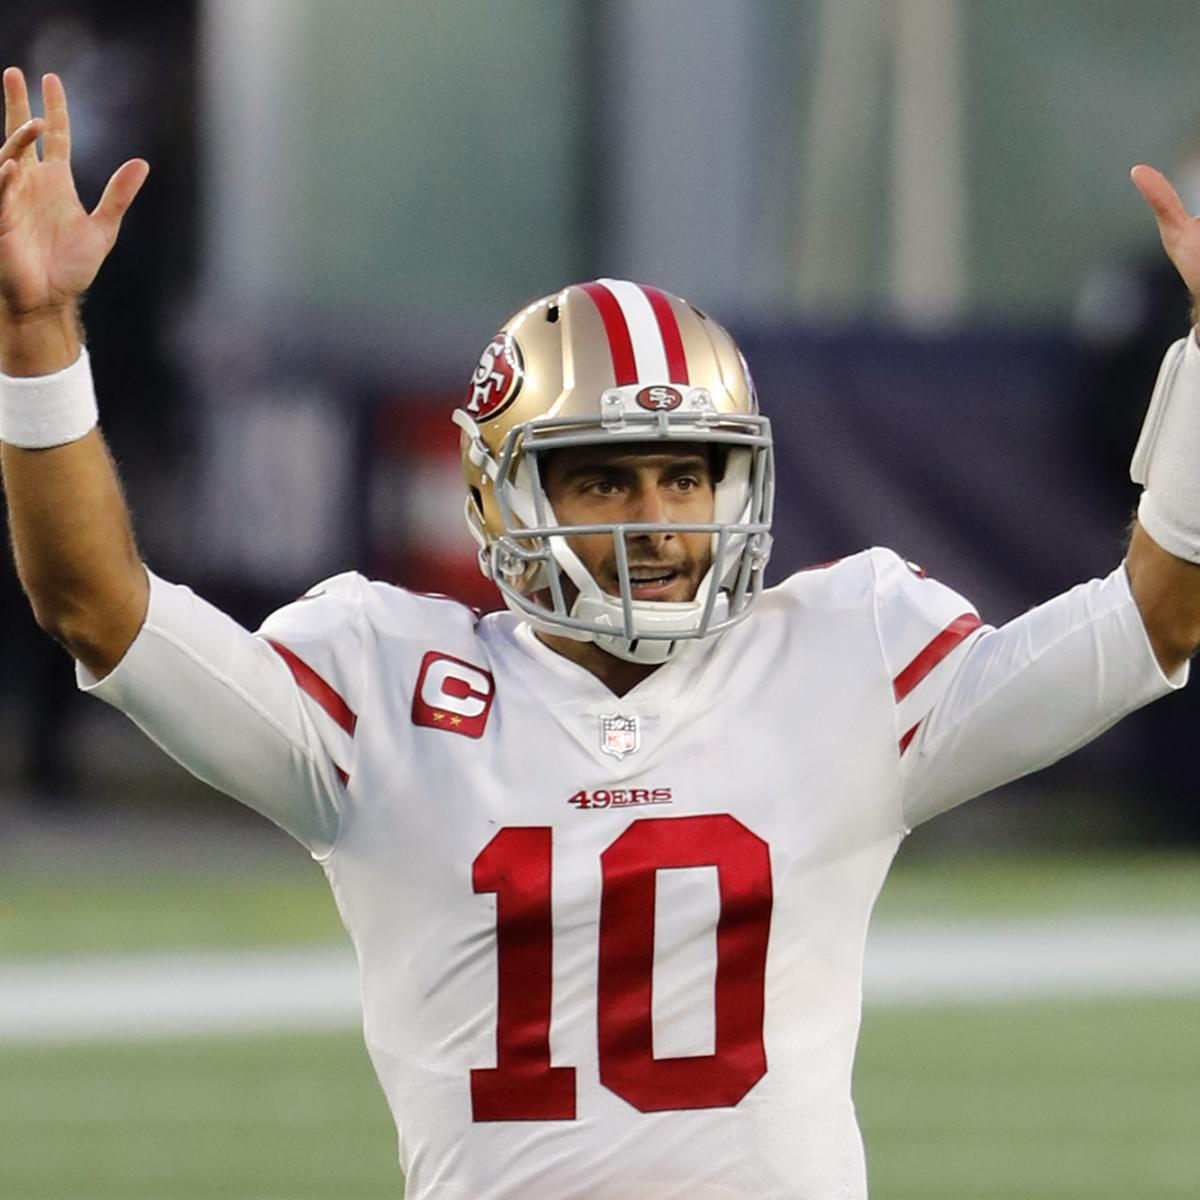 NFL Exec: Jimmy Garoppolo 'May Be Done' with 49ers Amid Struggles, Injuries